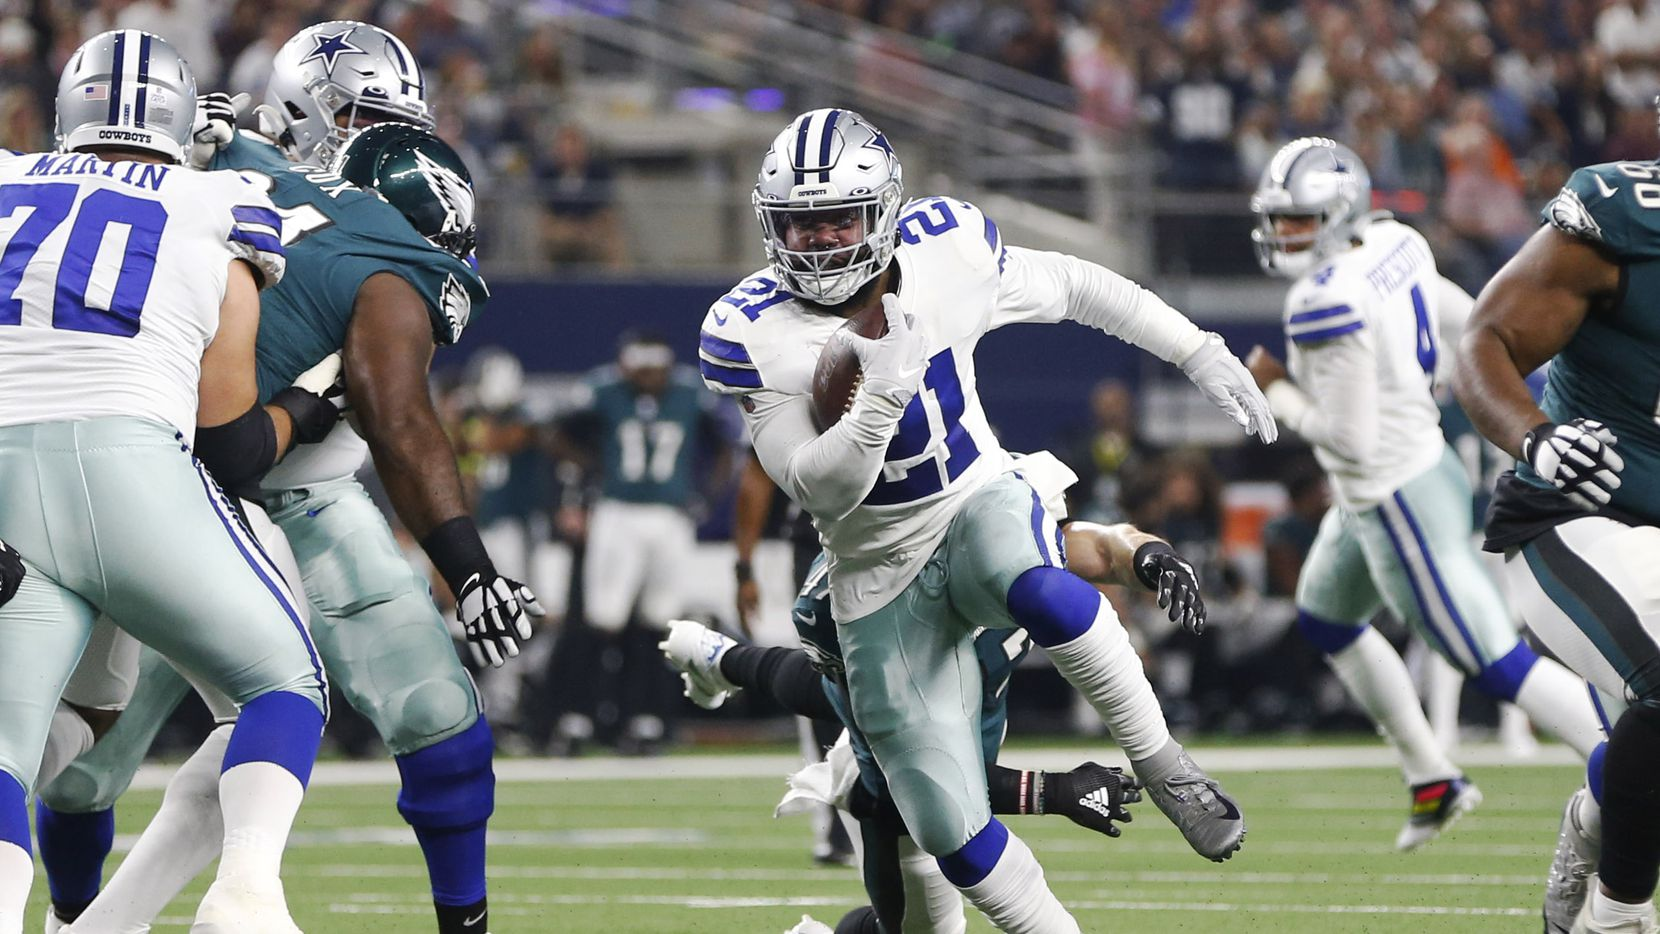 Dallas Cowboys running back Ezekiel Elliott (21) rushes up the field in a game against the Philadelphia Eagles during the first half of play at AT&T Stadium in Arlington, Texas on Sunday, October 20, 2019.